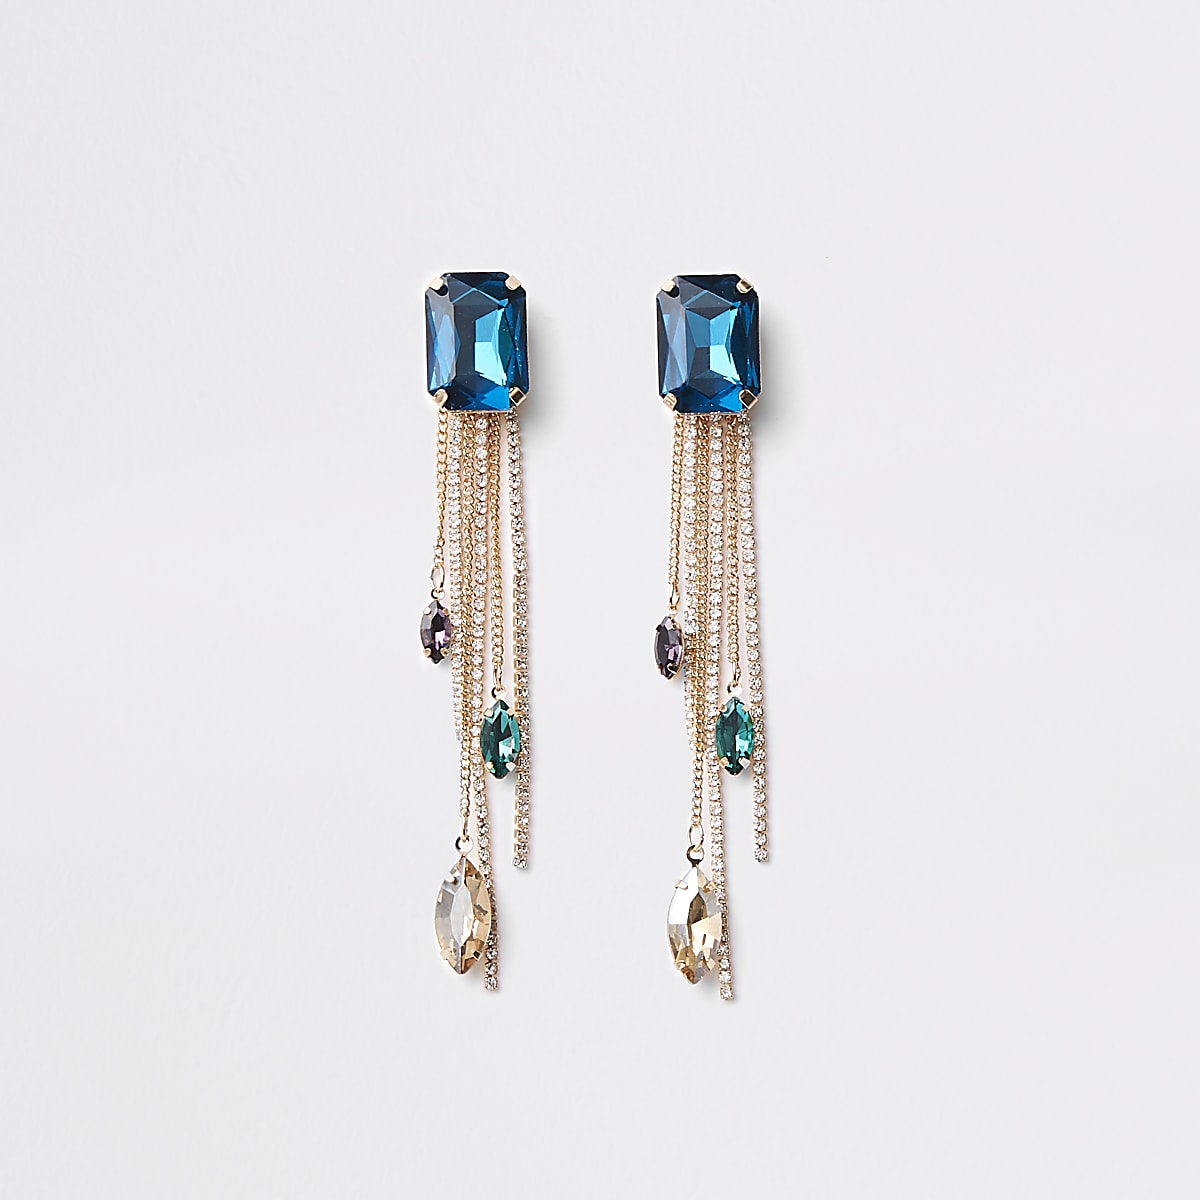 Gold tone blue gem stone drop earrings